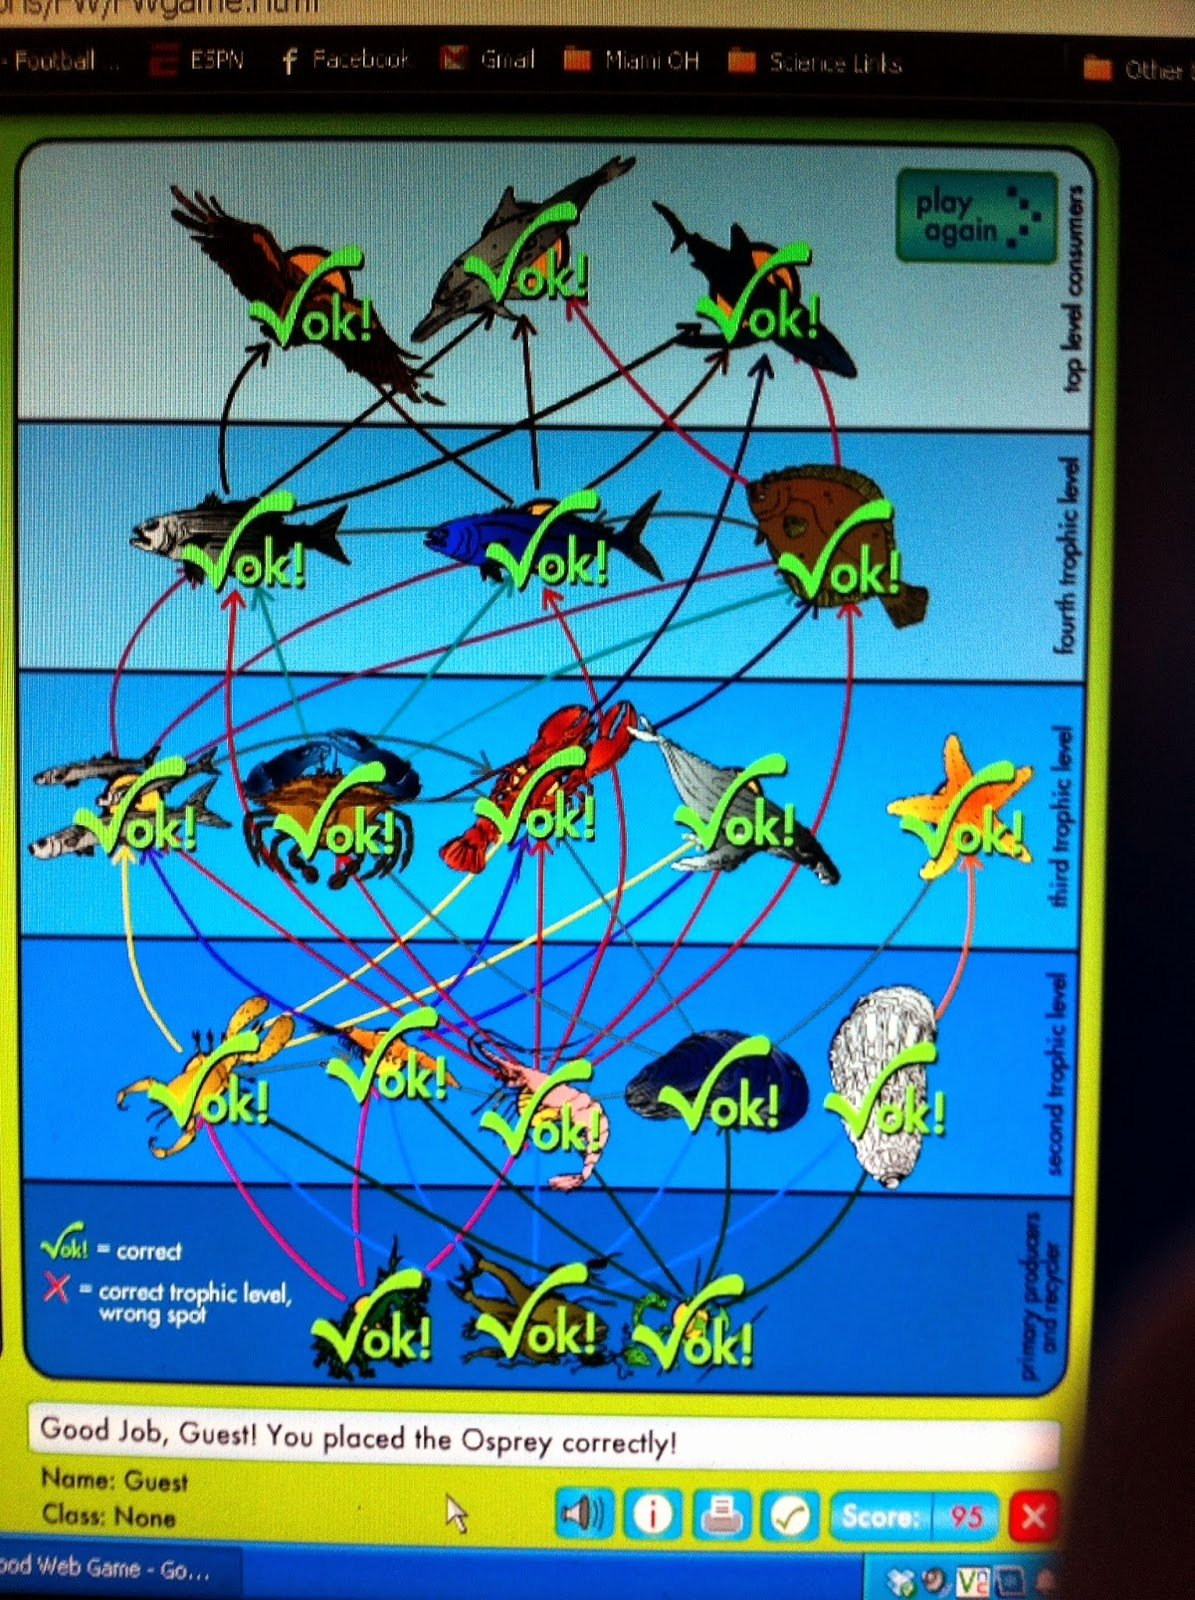 Food Web Worksheet Answers Awesome Marine Conservation Lessons Plans Sharks and the Marine